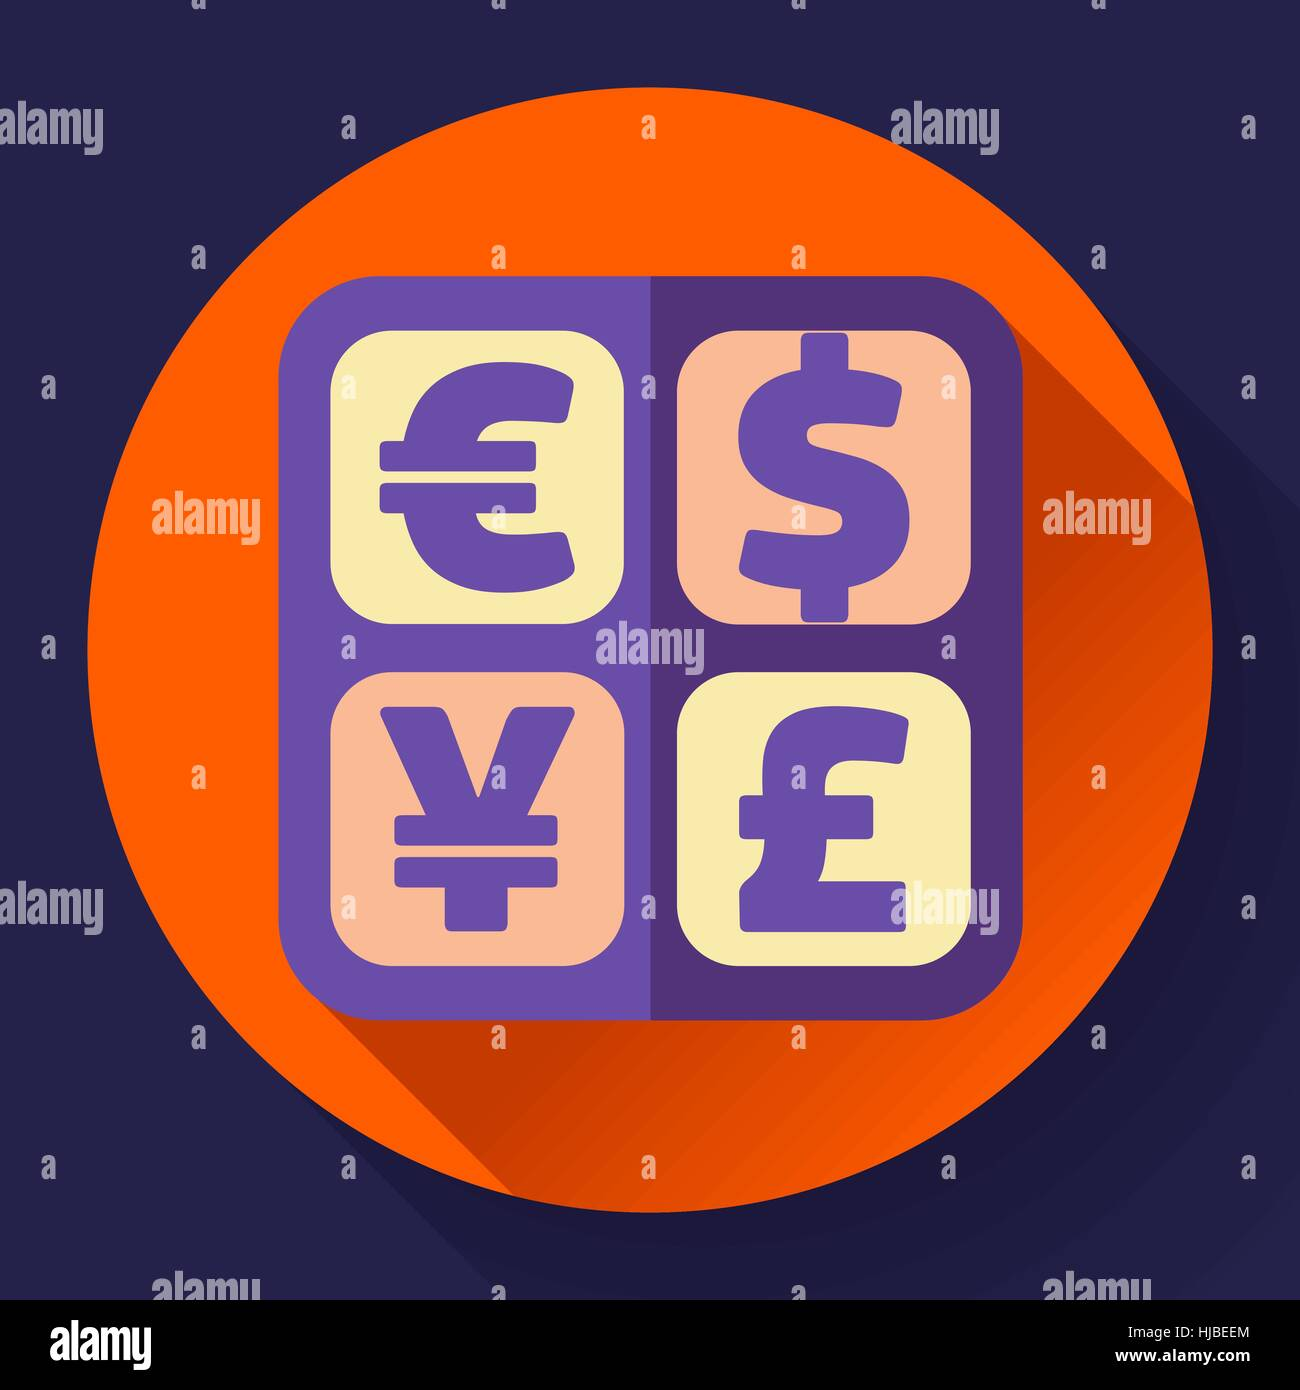 Cash converter stock photos cash converter stock images alamy currency exchange sign icon and converter symbol money label stock image biocorpaavc Gallery